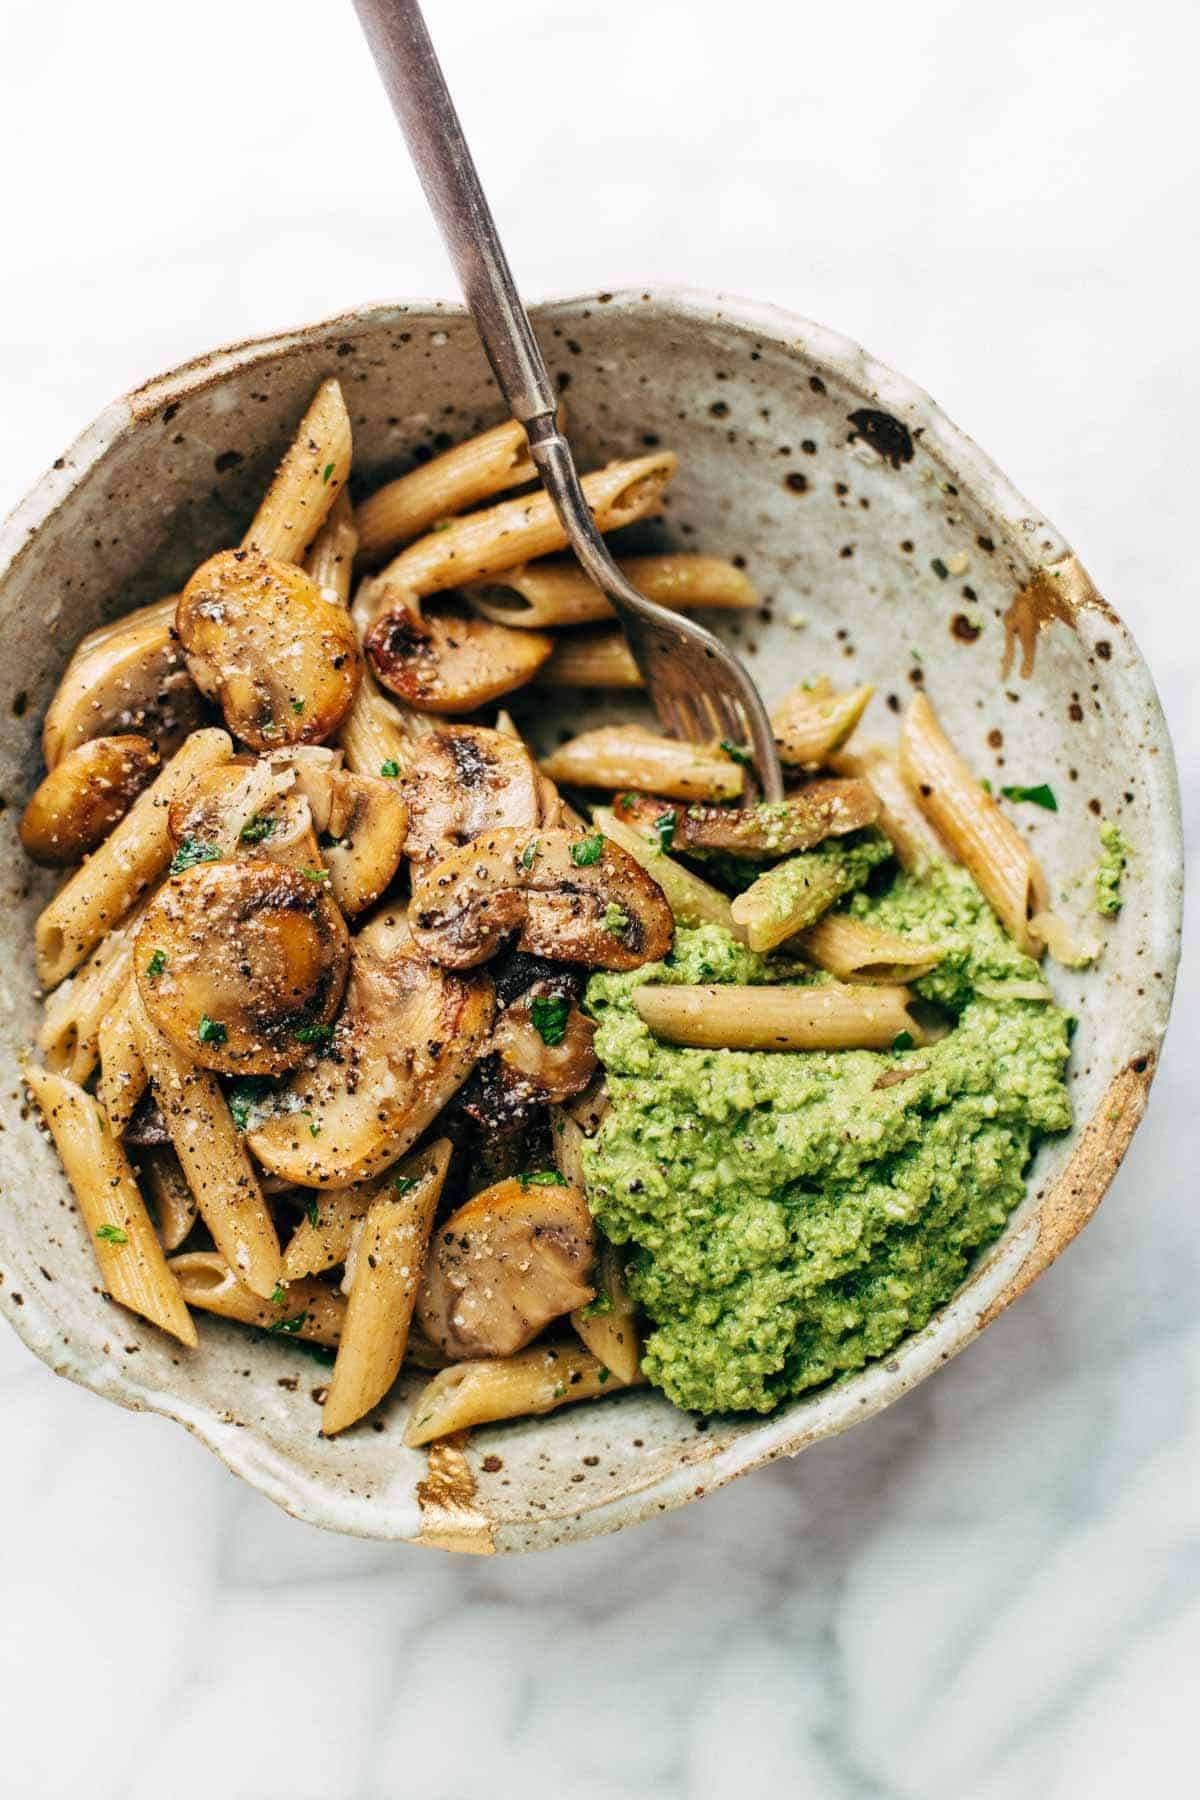 Simple Mushroom Penne with Walnut Pesto in a speckled bowl.